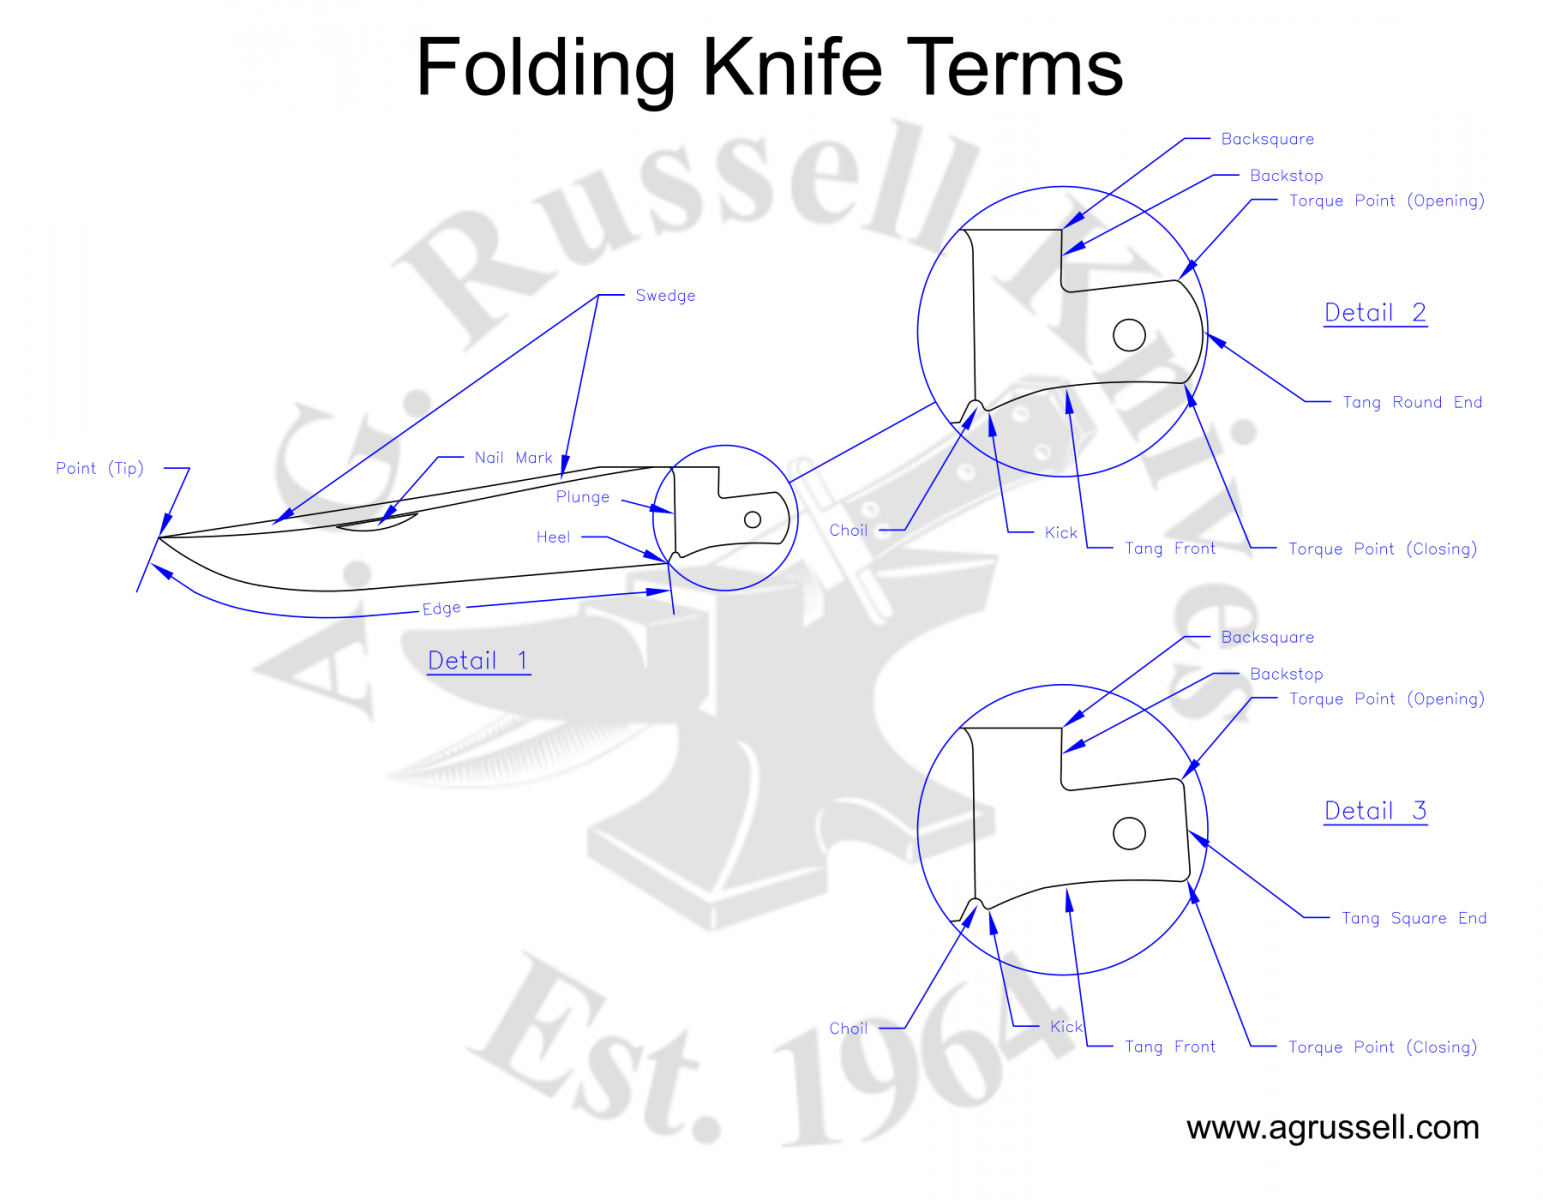 Parts & Terms of a Traditional Folding Knife